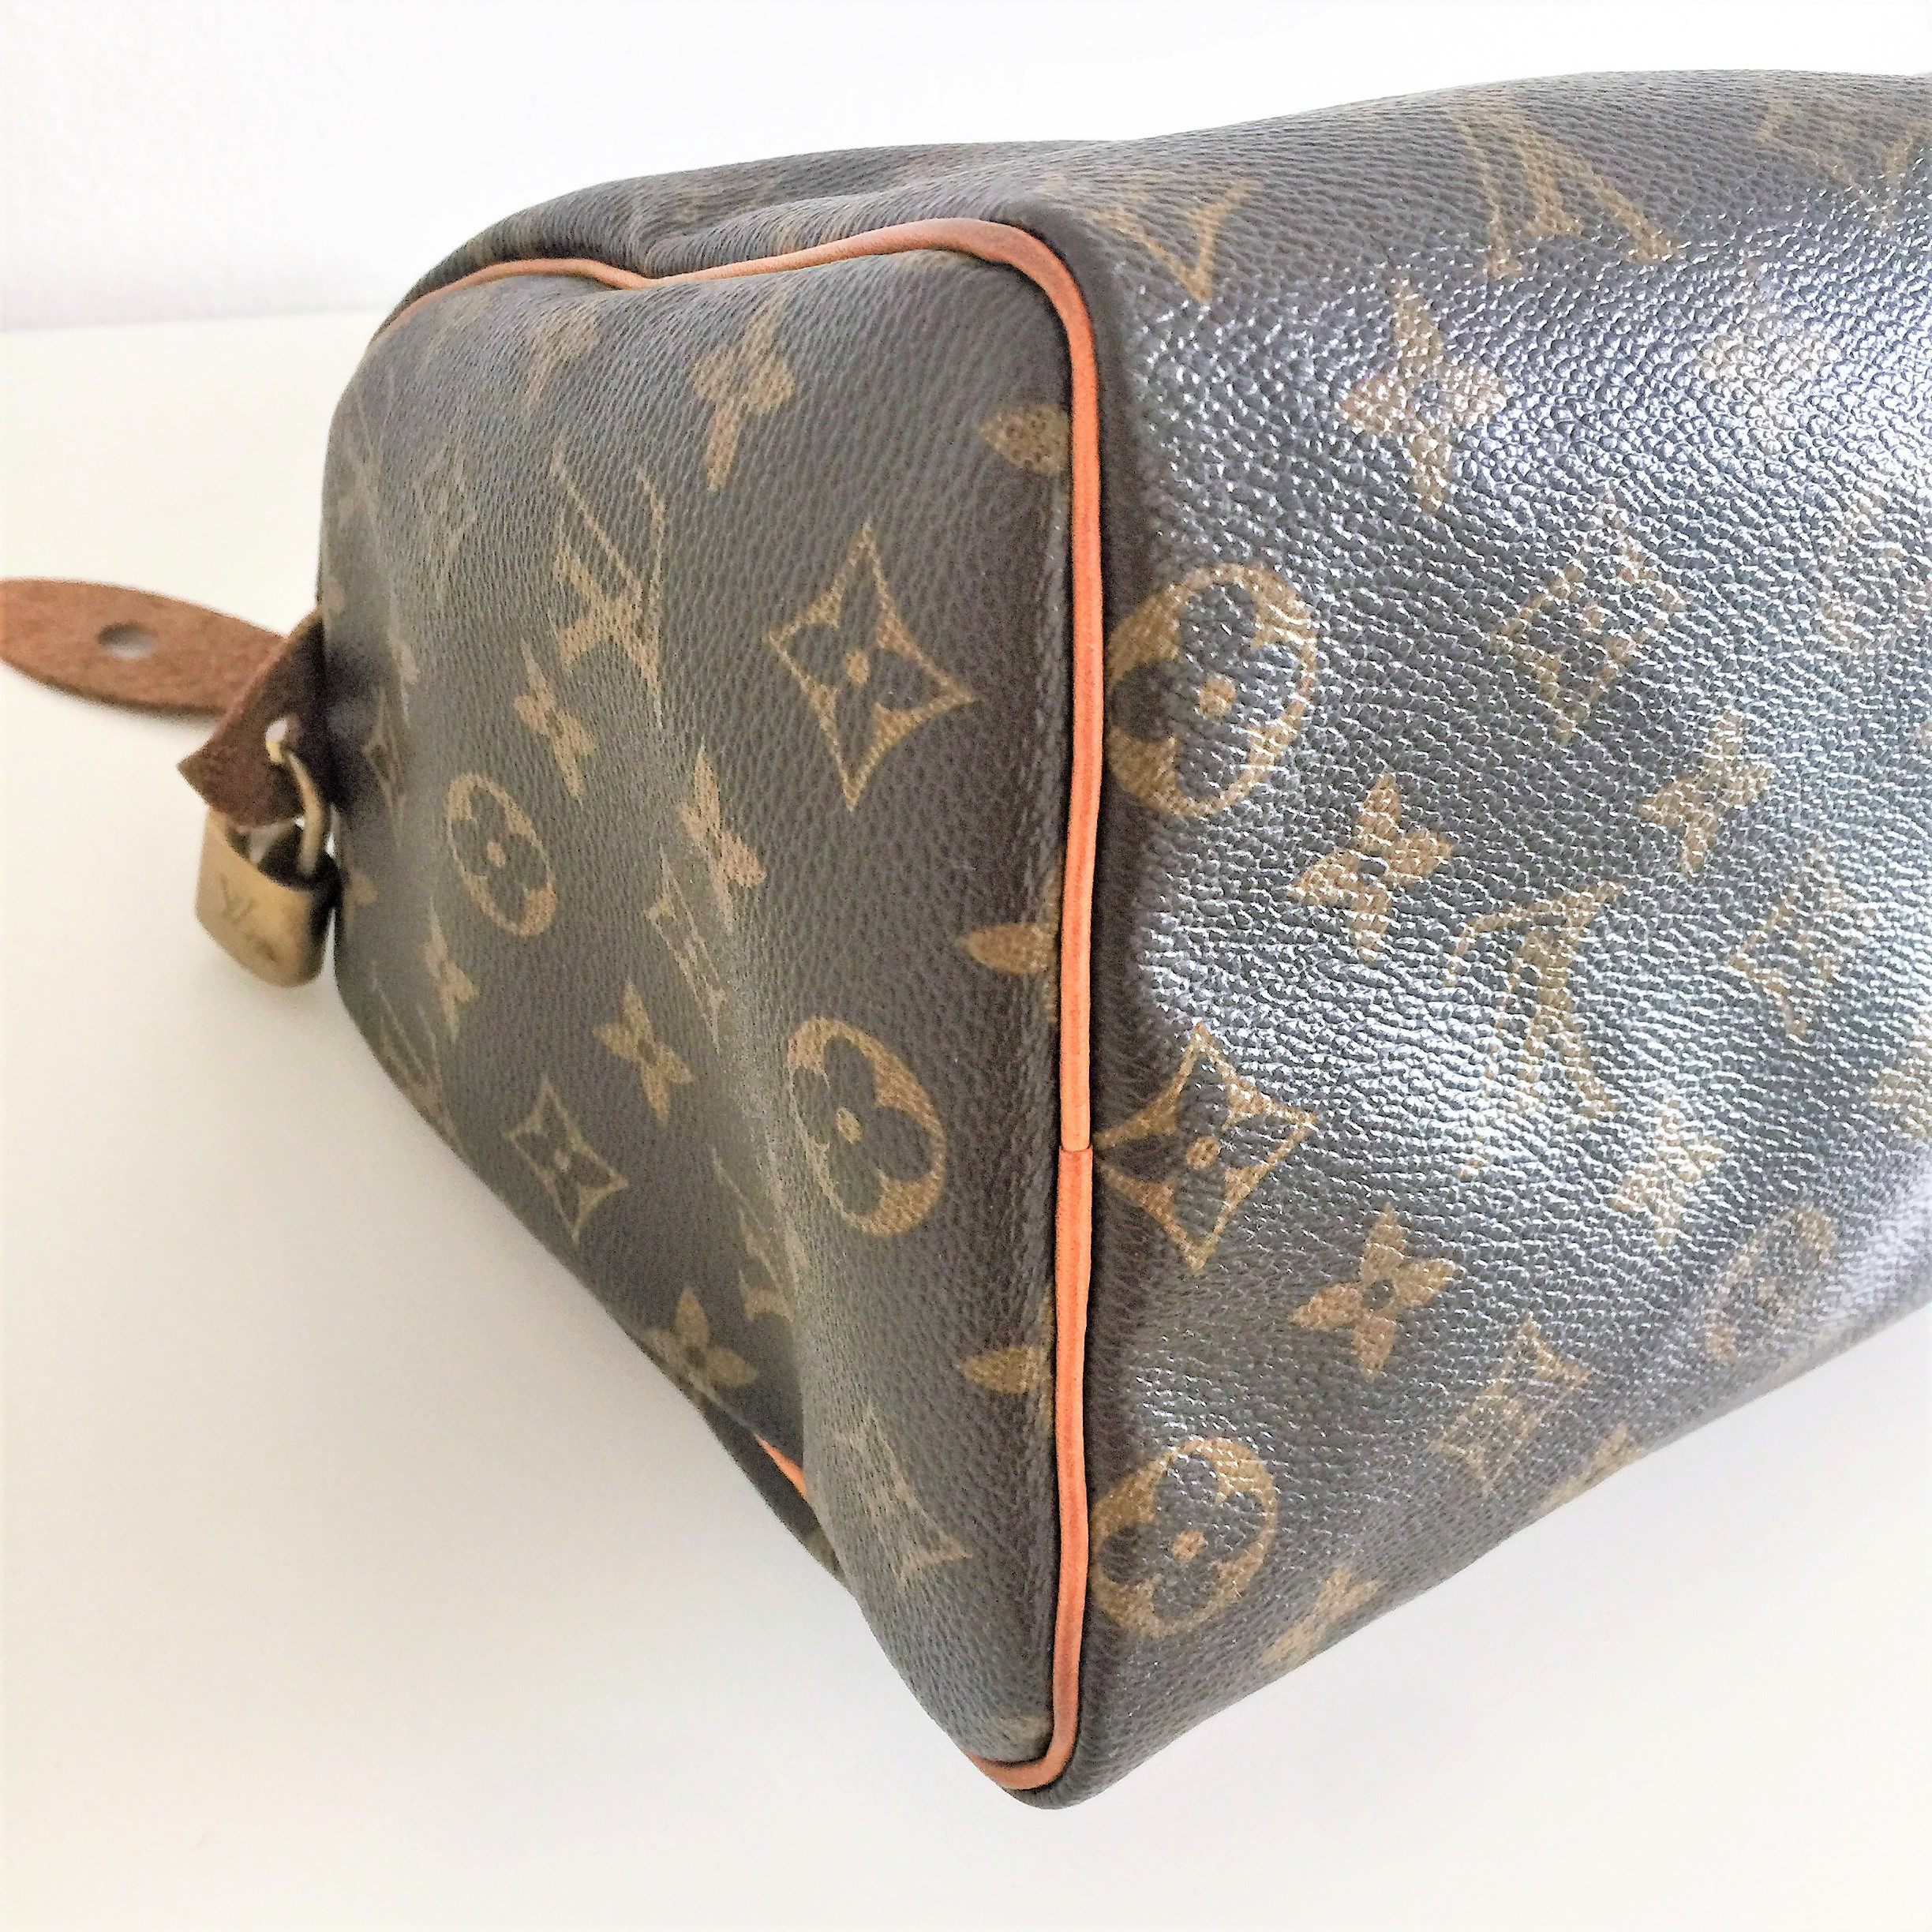 Borse Firmate : Louis vuitton monogram speedy pre owned lv bag in very